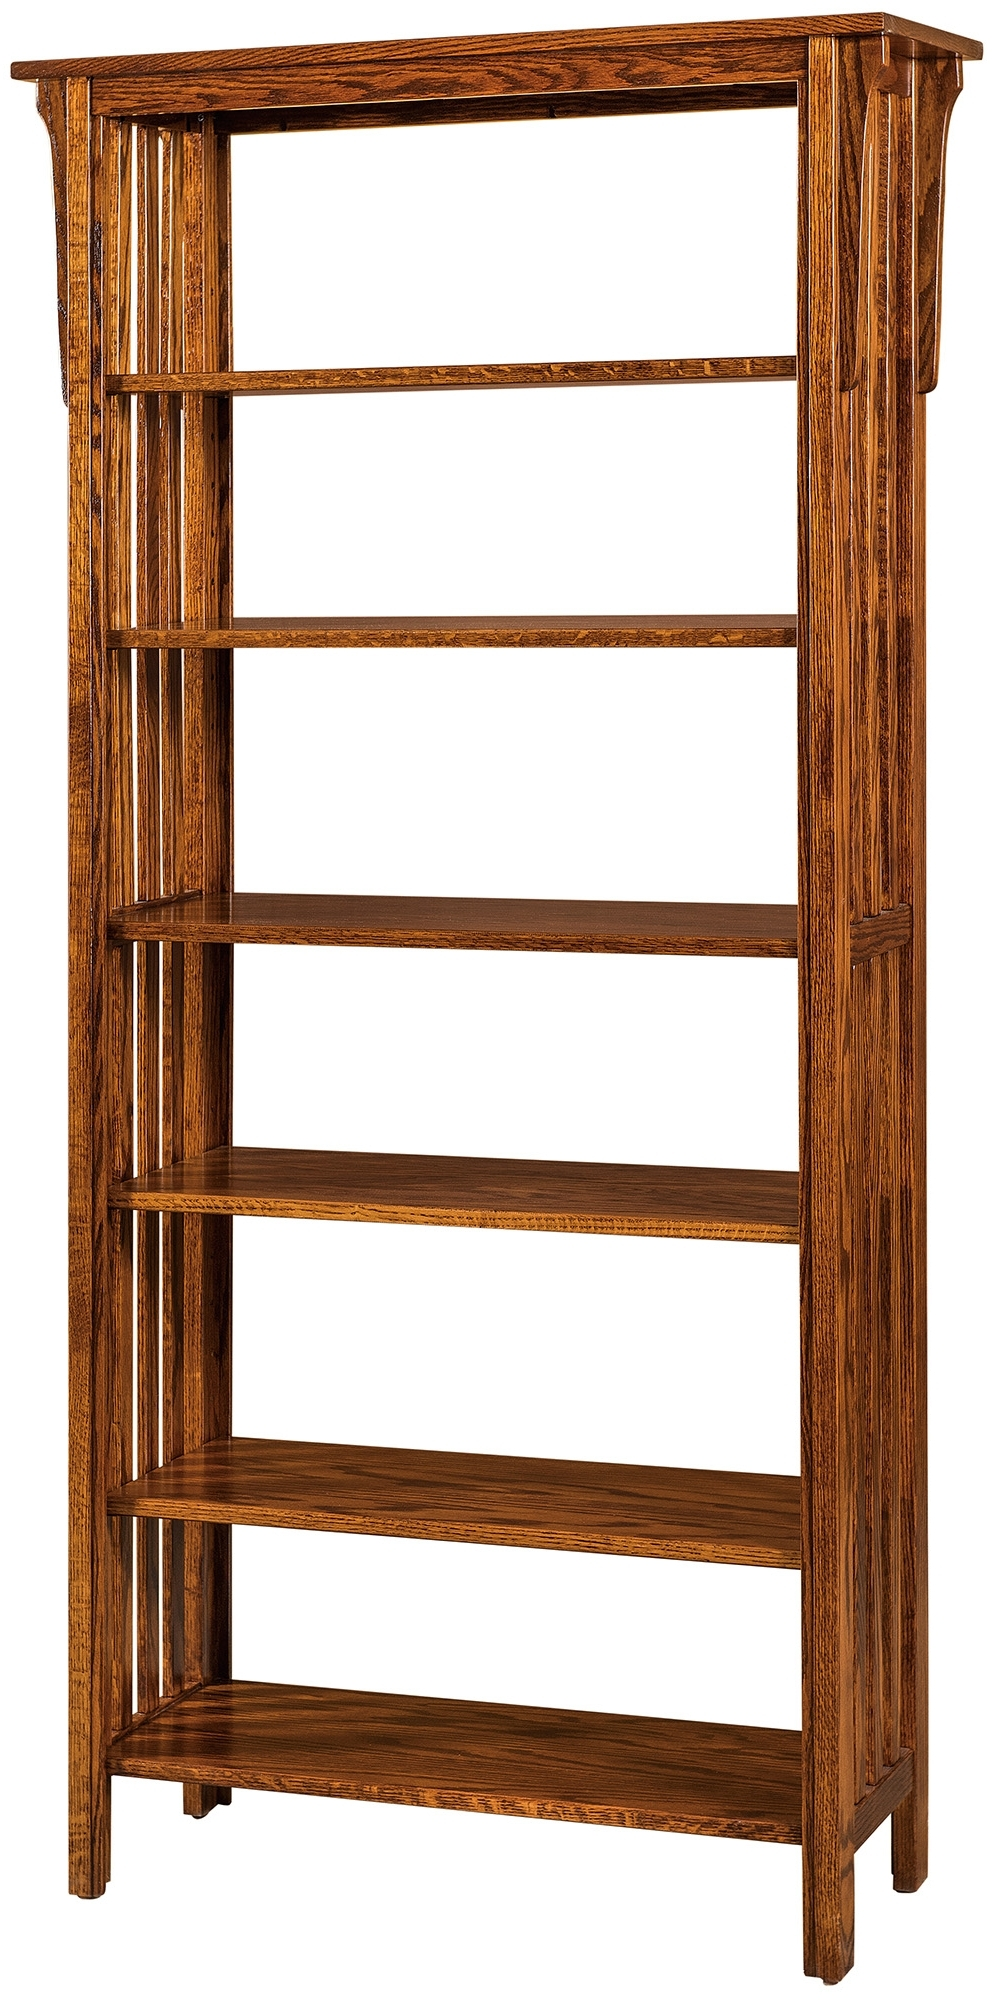 Extra Large Bookcases In Latest Honeymaze Extra Large Bookcase (Gallery 3 of 15)